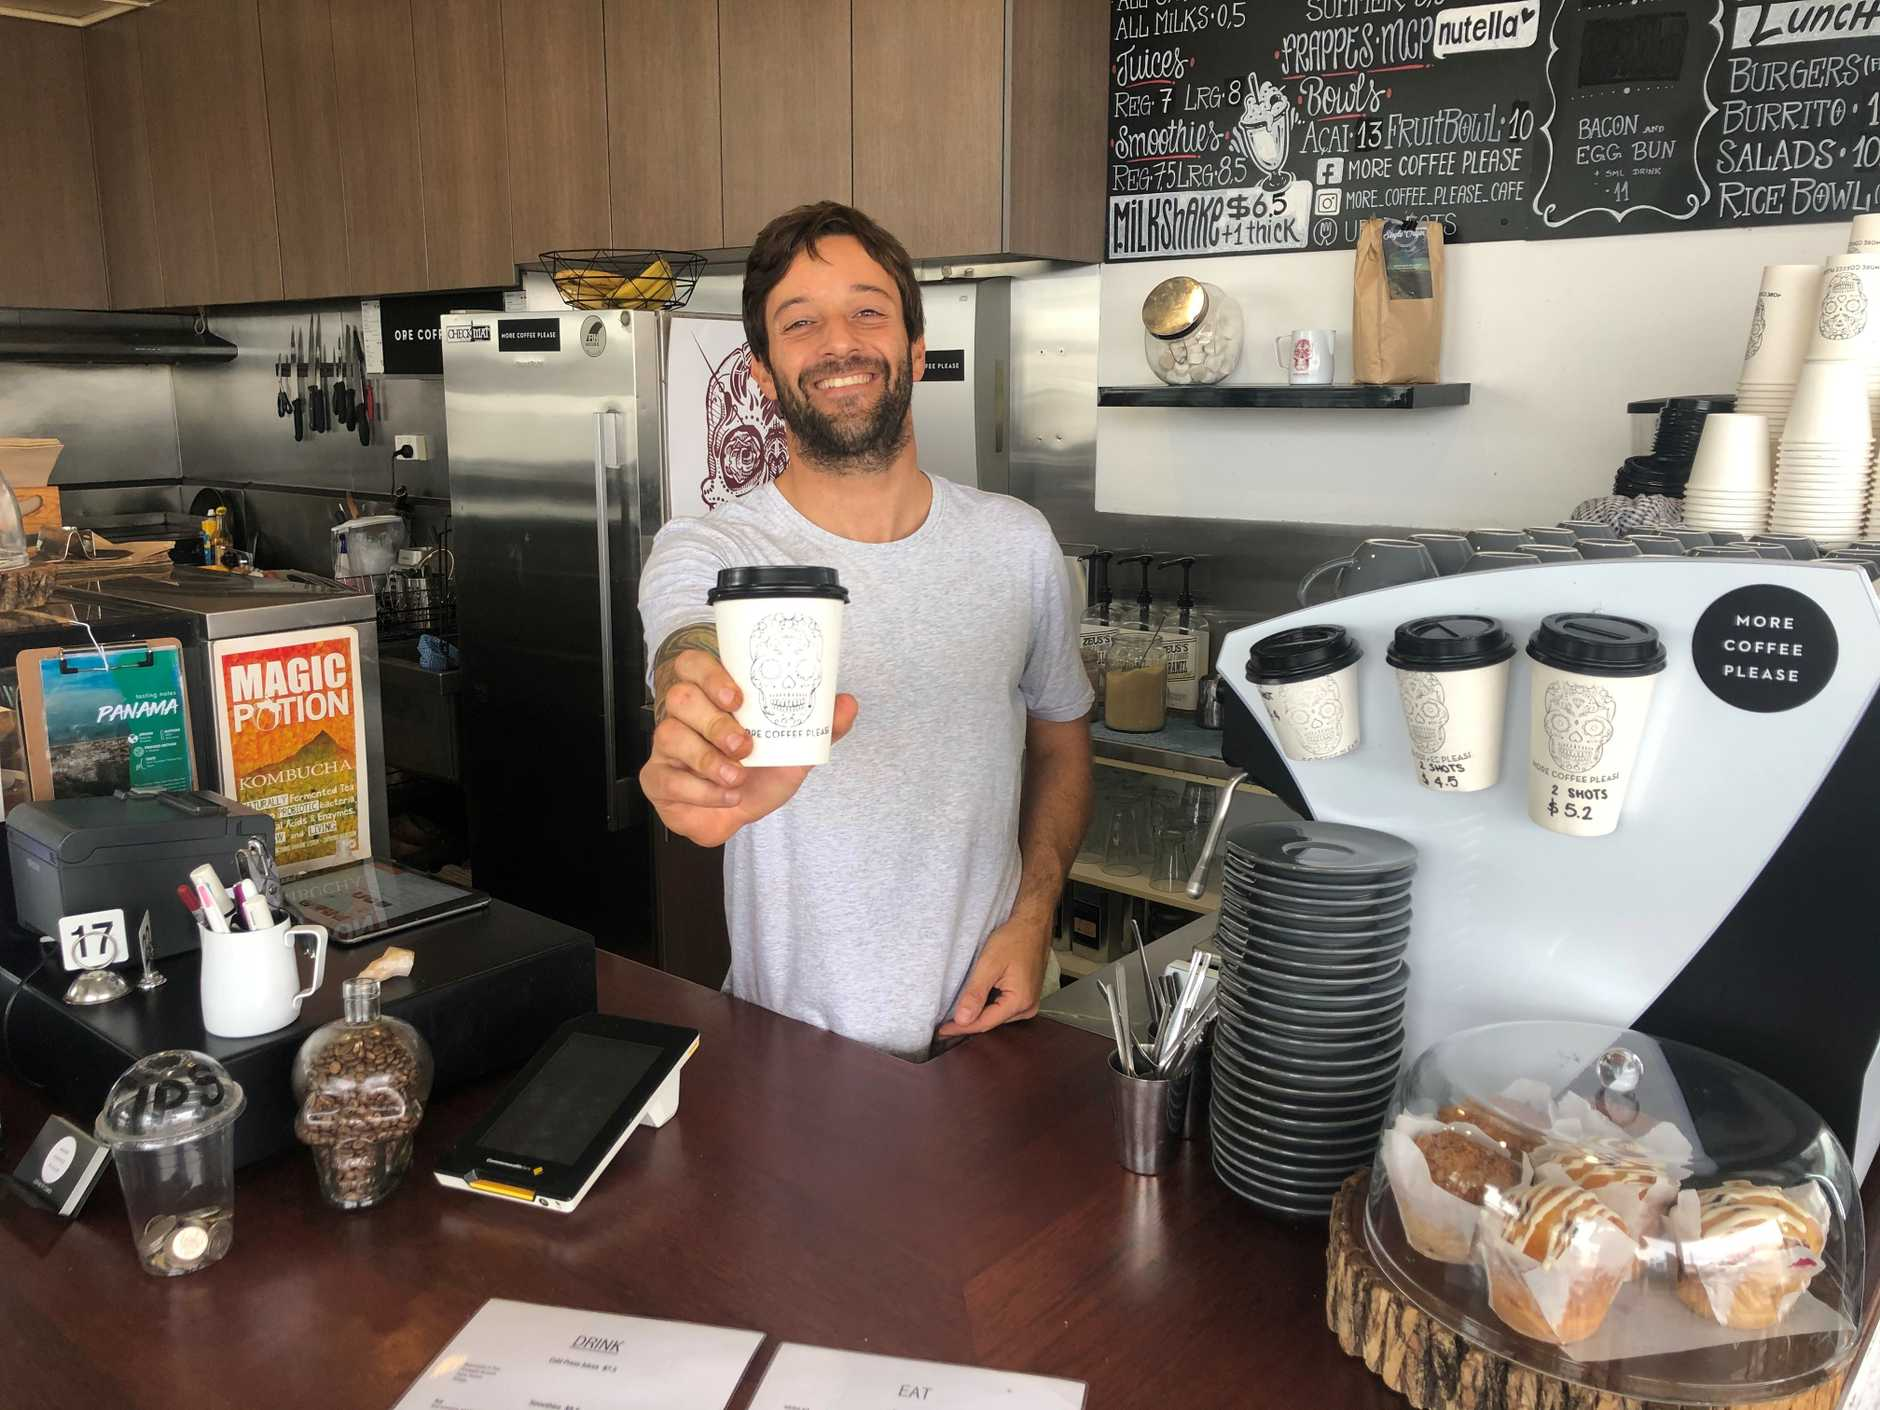 More coffee please cafe owner Felipe Castrabeche is having passengers of cars stuck in traffic get out and order coffee to drink while they wait.